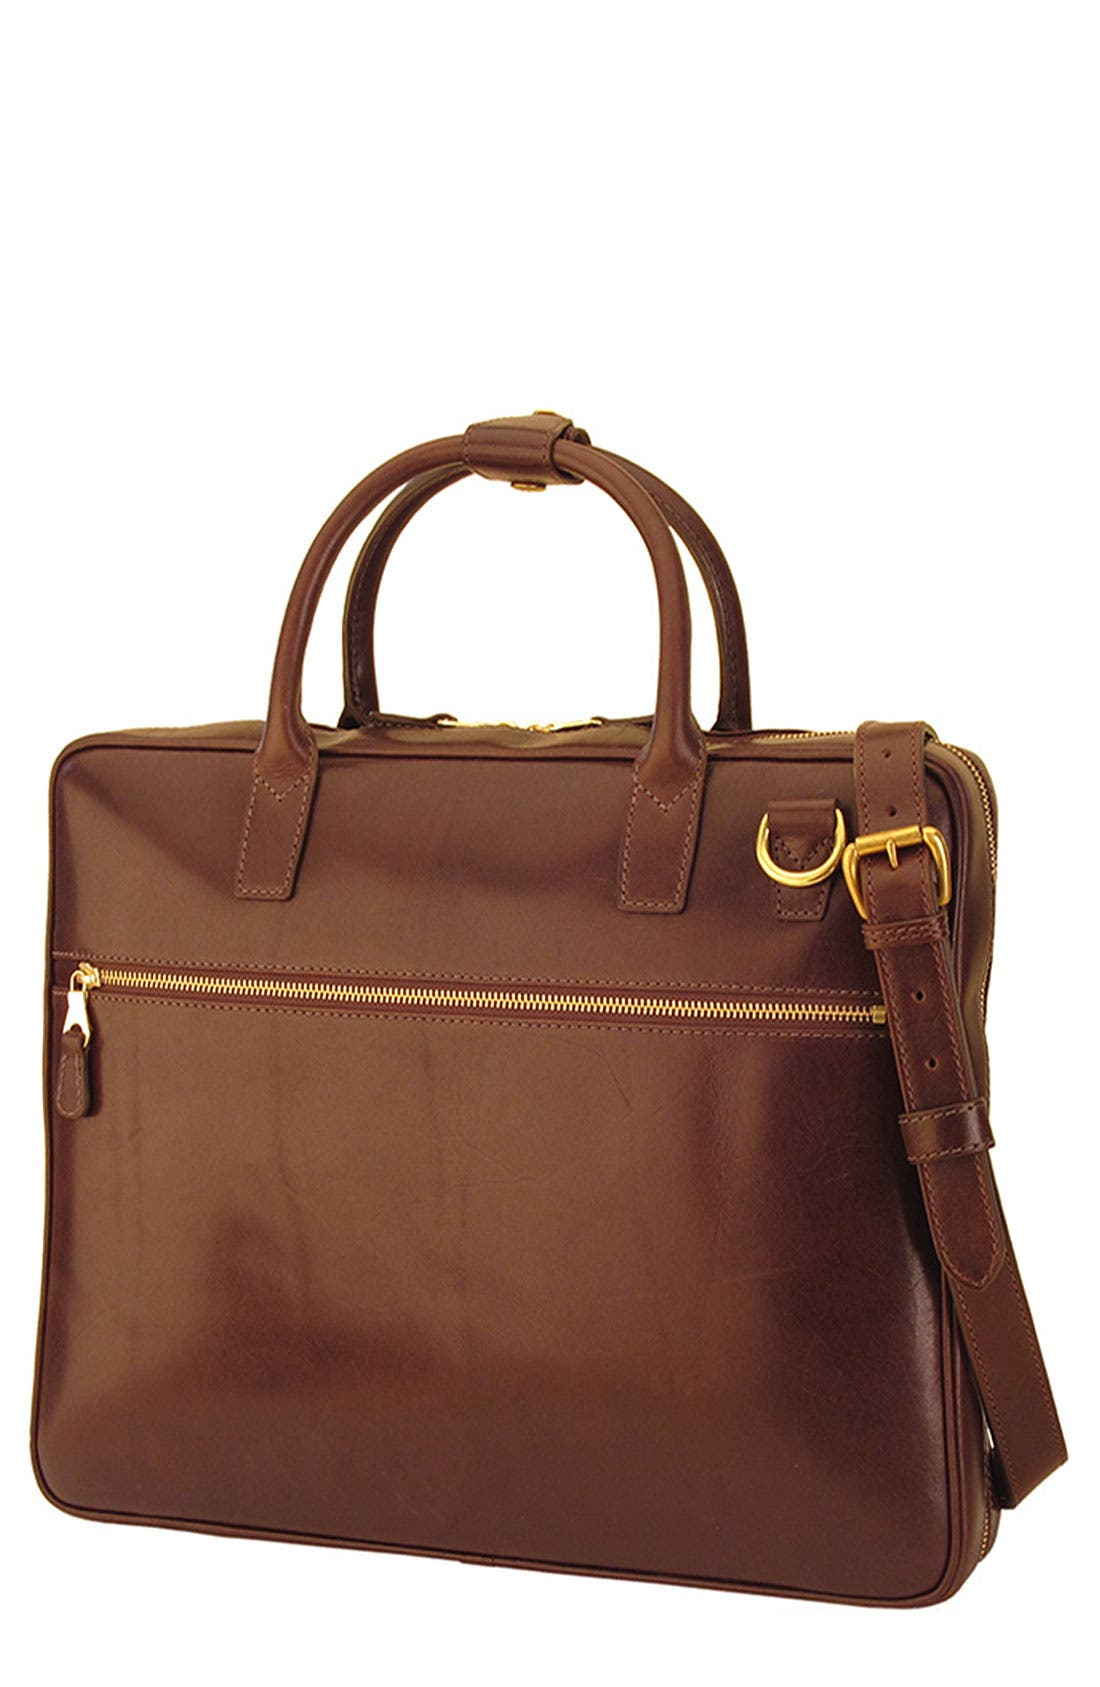 Alternate Image 1 Selected - Mulholland 'Slim' Leather Laptop Bag (17 Inch)